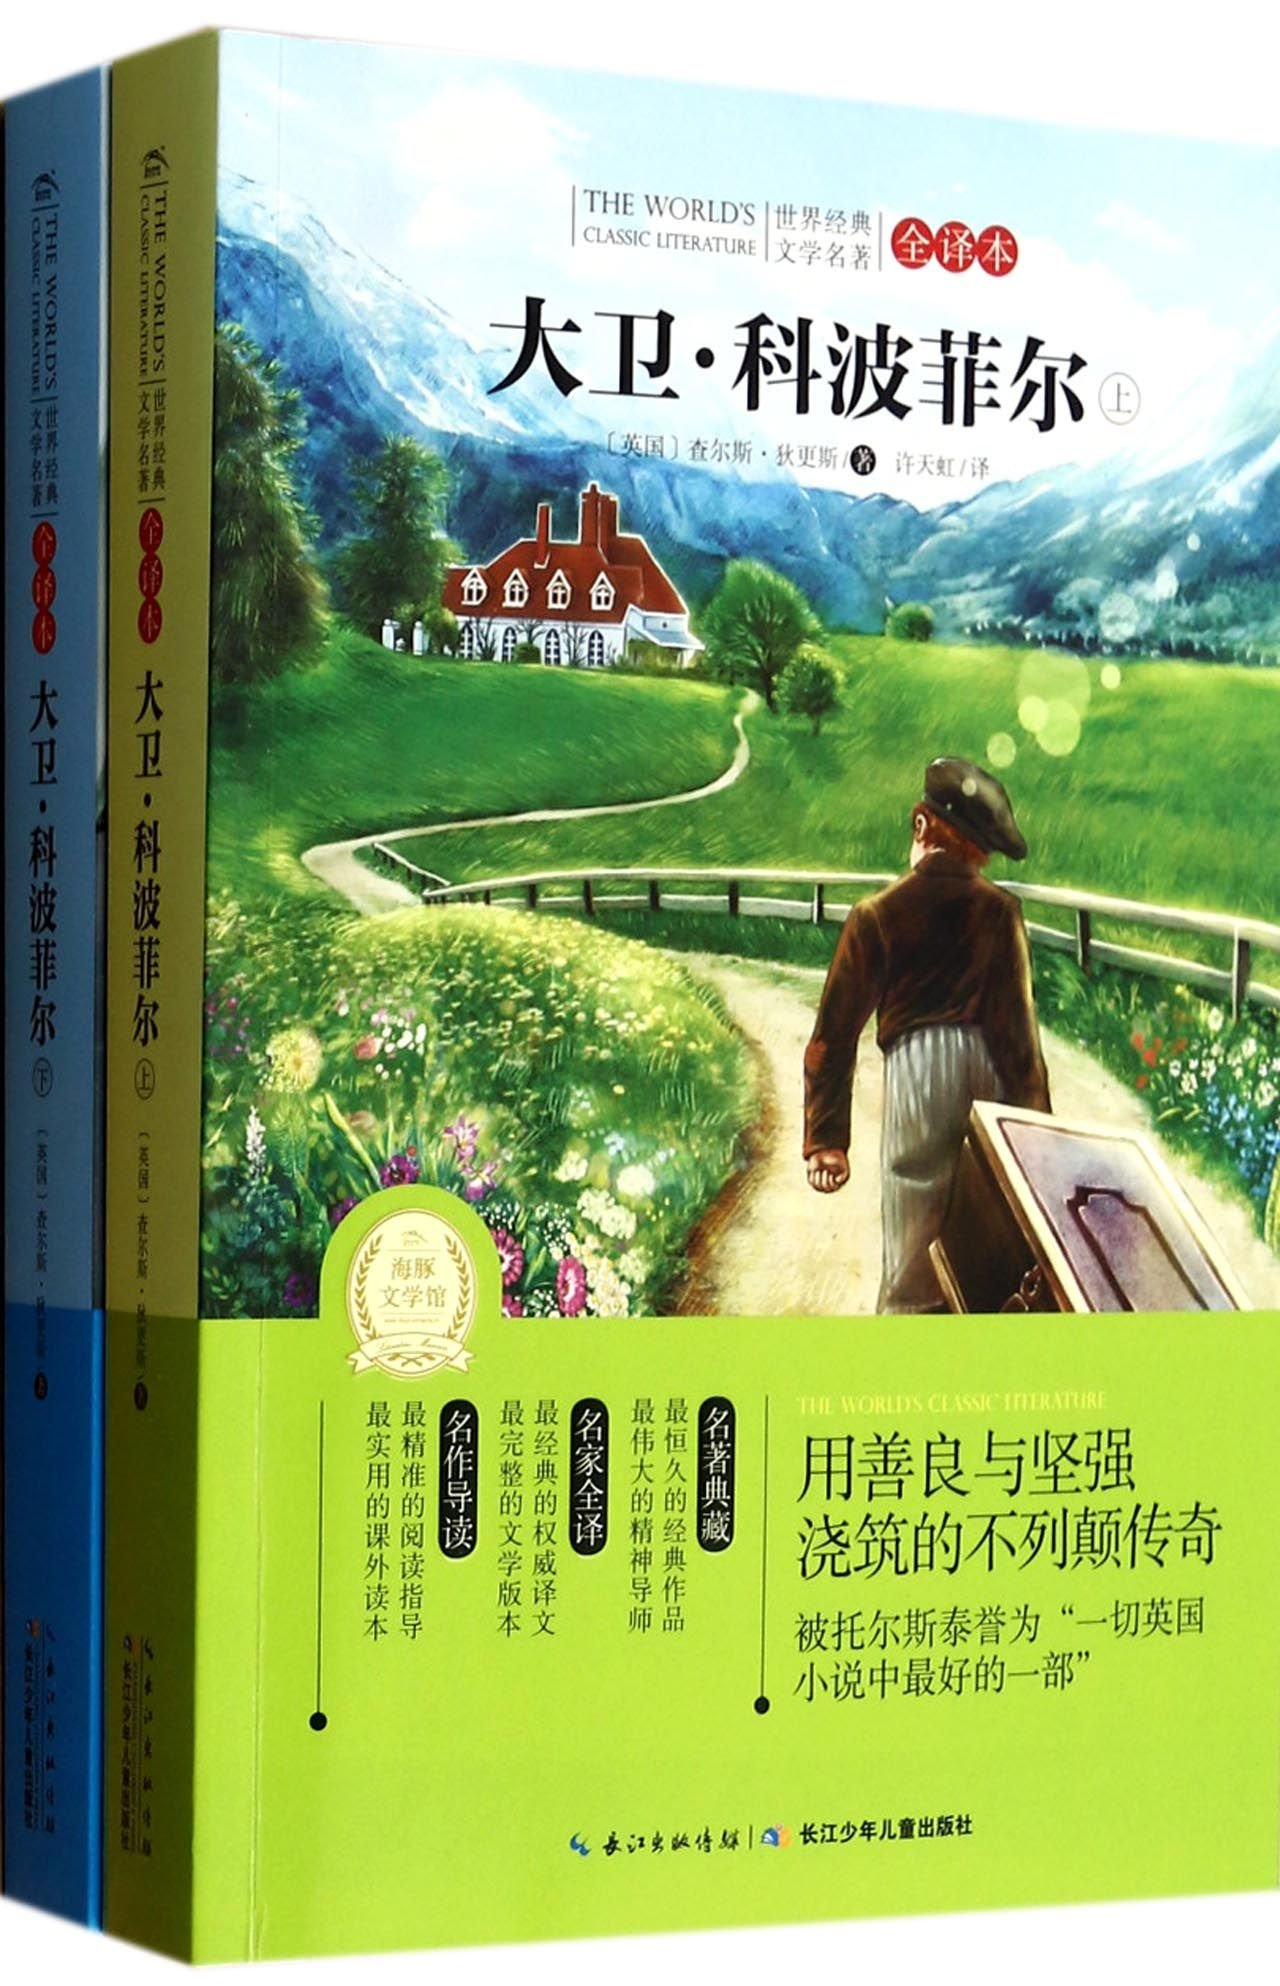 Download World classical literary classics. versions were (3) : David Copperfield (Set 2 Volumes)(Chinese Edition) PDF